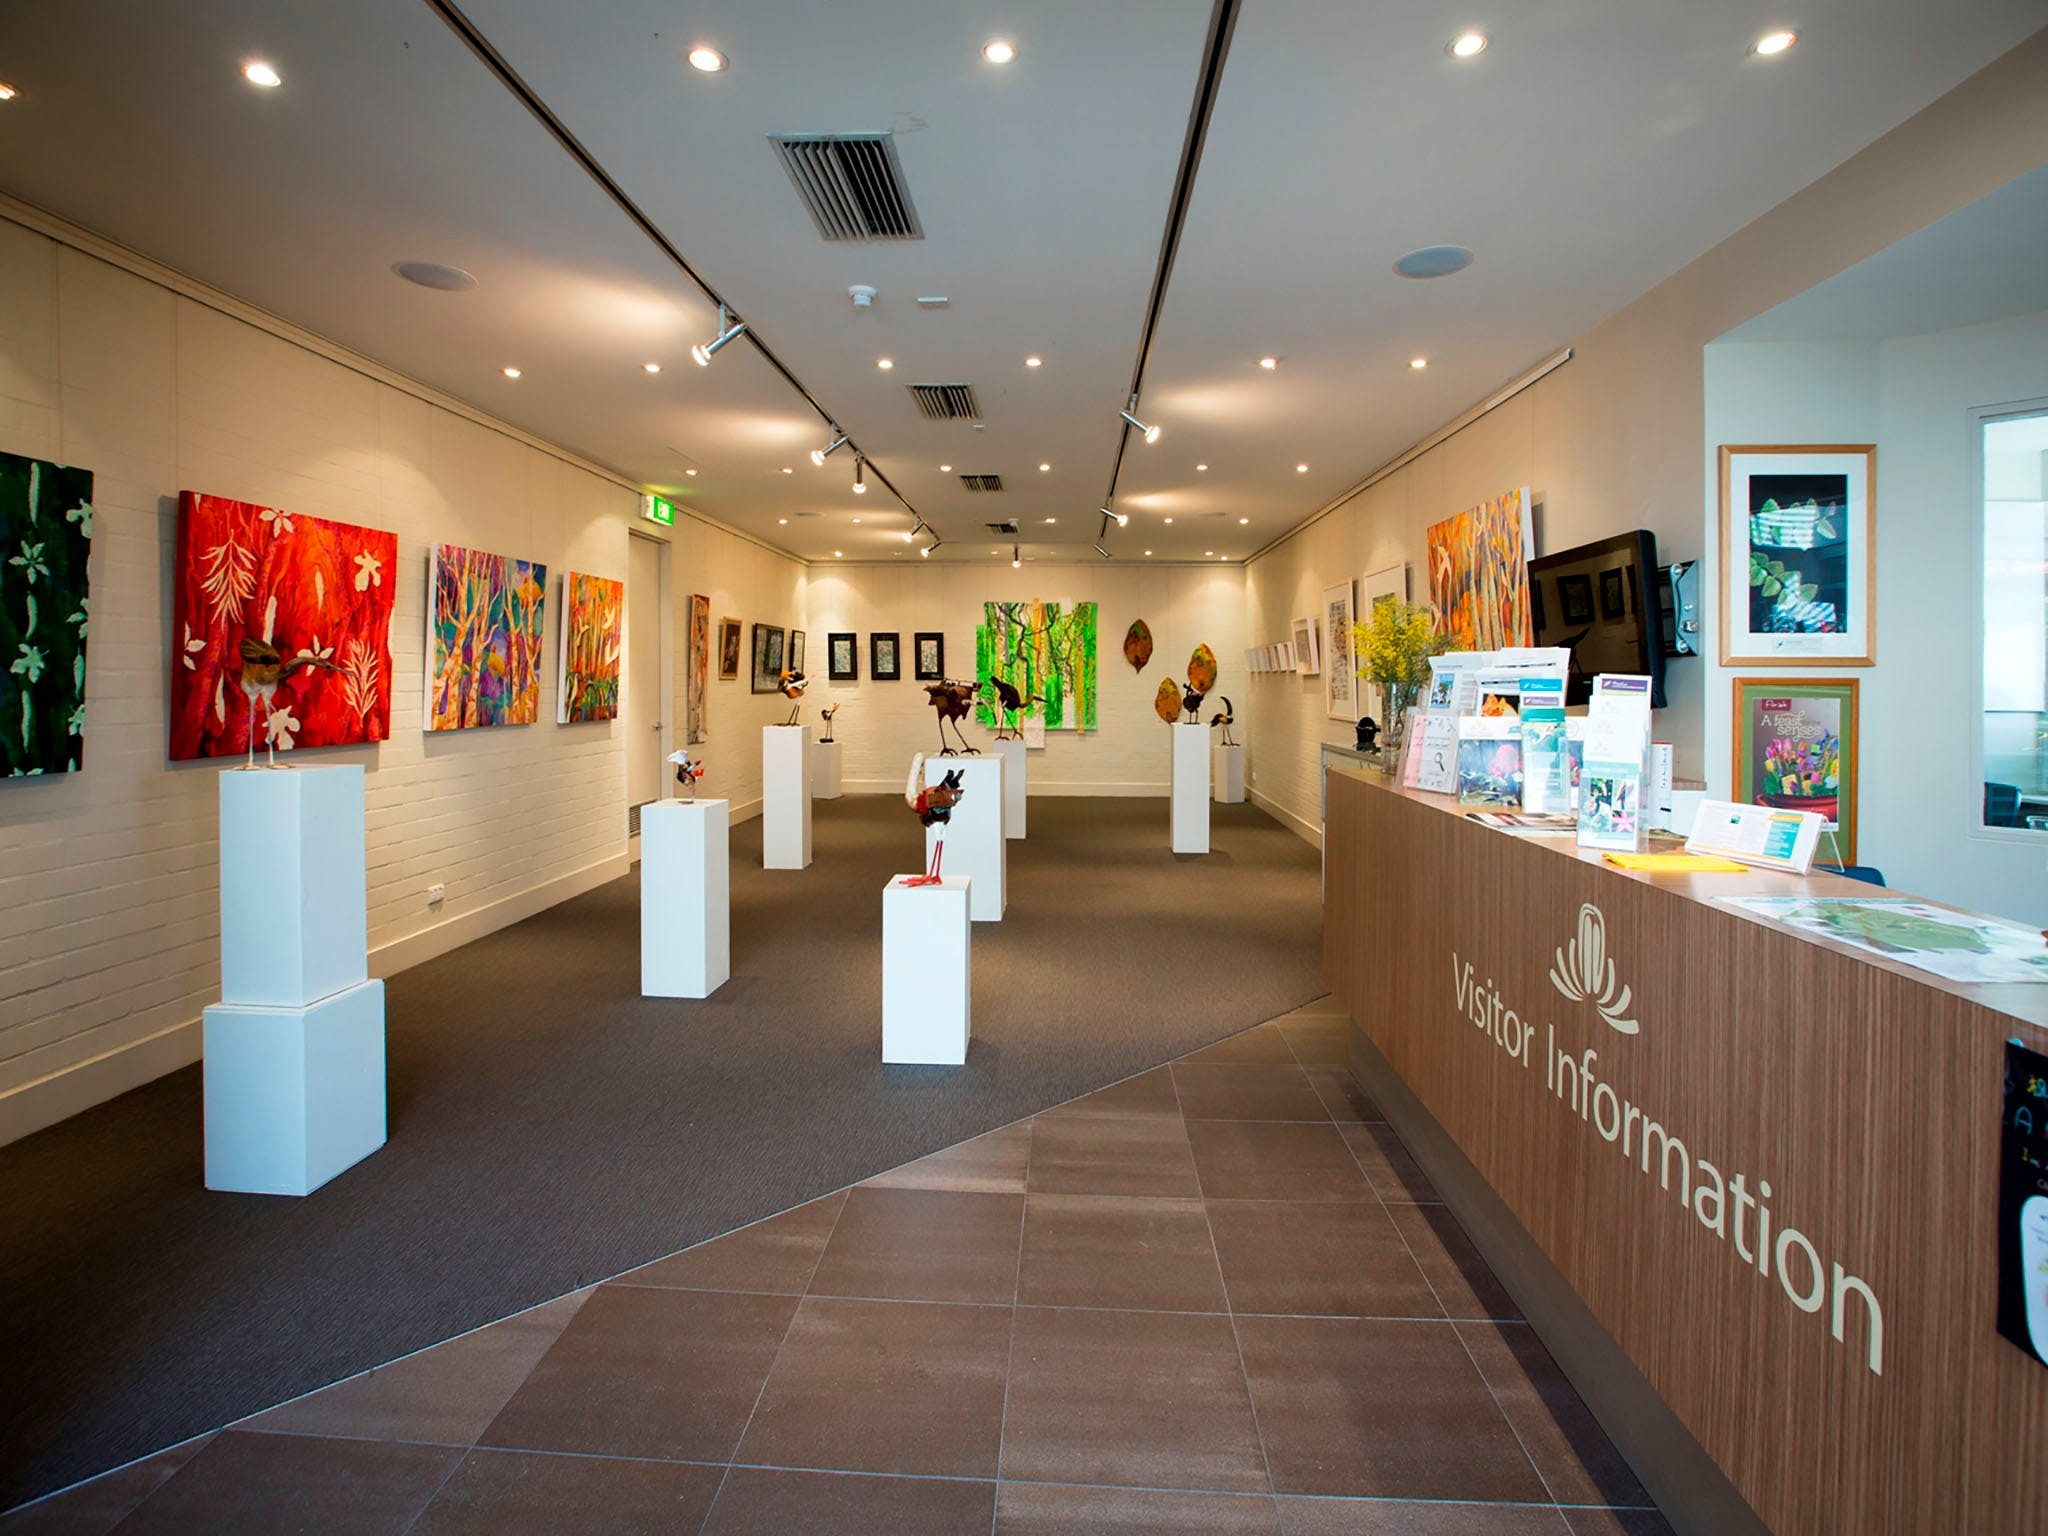 Australian National Botanic Gardens Visitor Centre Gallery - Taree Accommodation